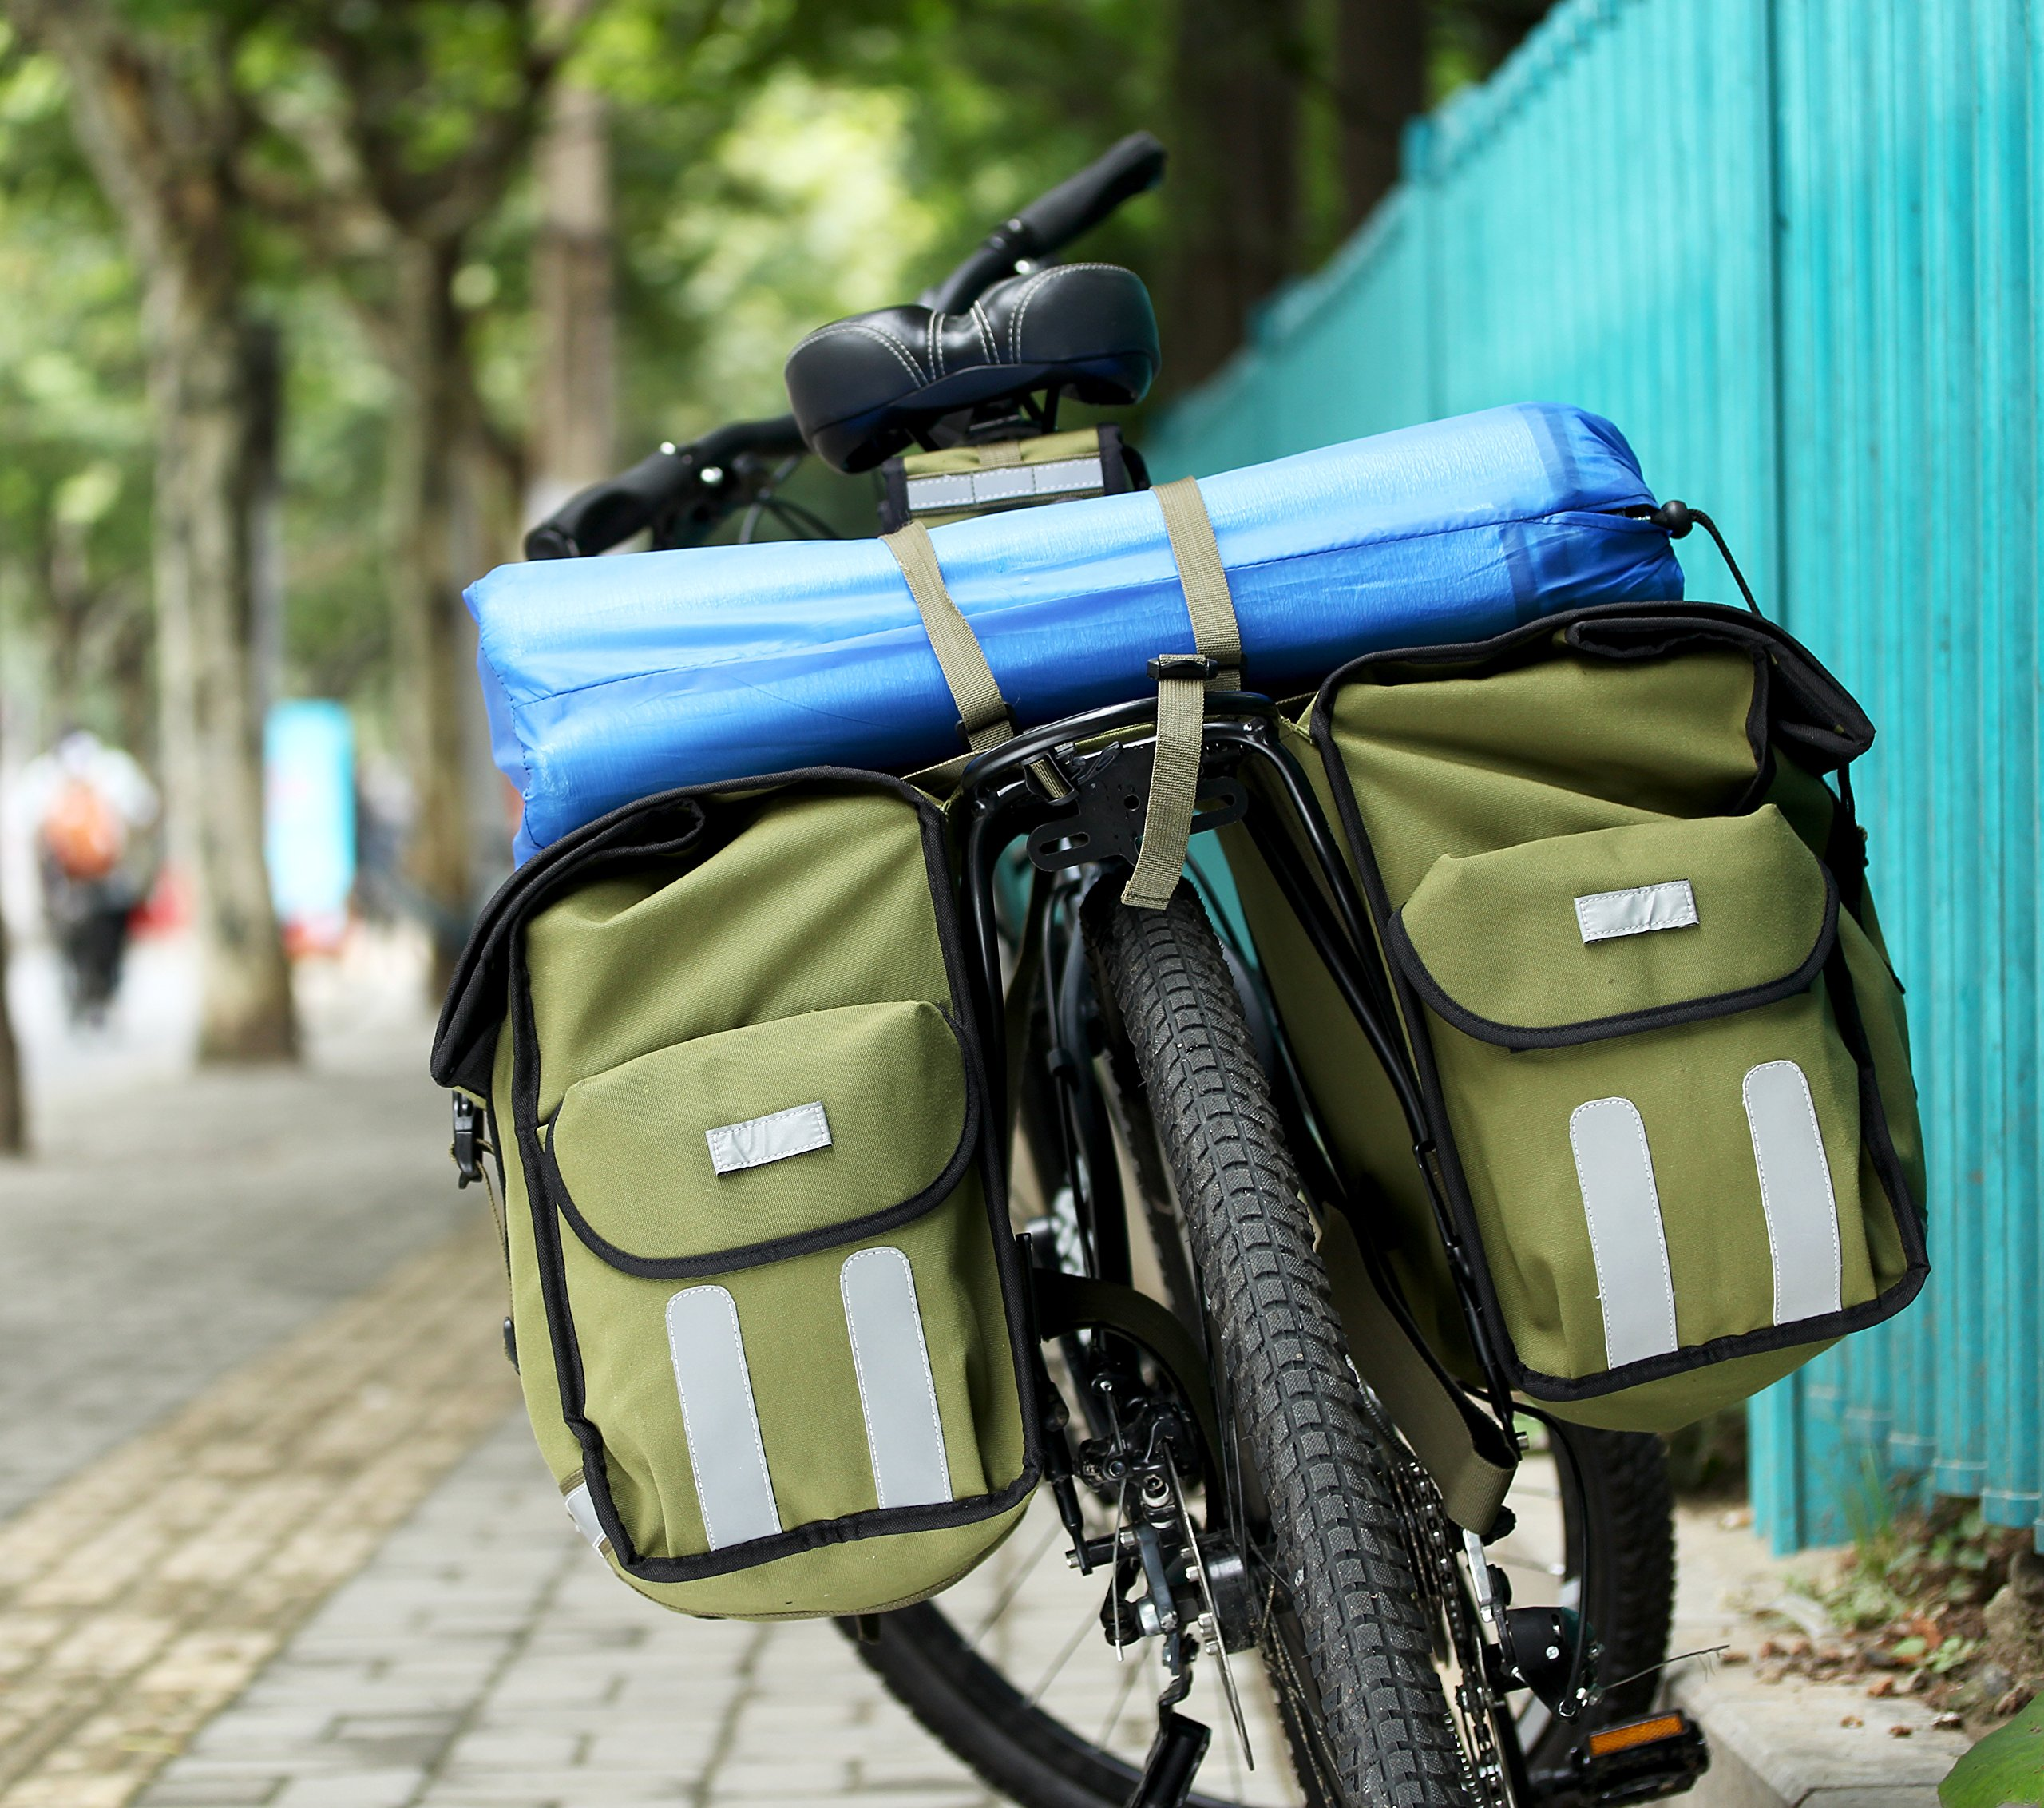 Roswheel 14686 Expedition Series Bike Rear Rack Bag Bicycle Double Panniers Cargo Trunk Bag by Roswheel (Image #8)